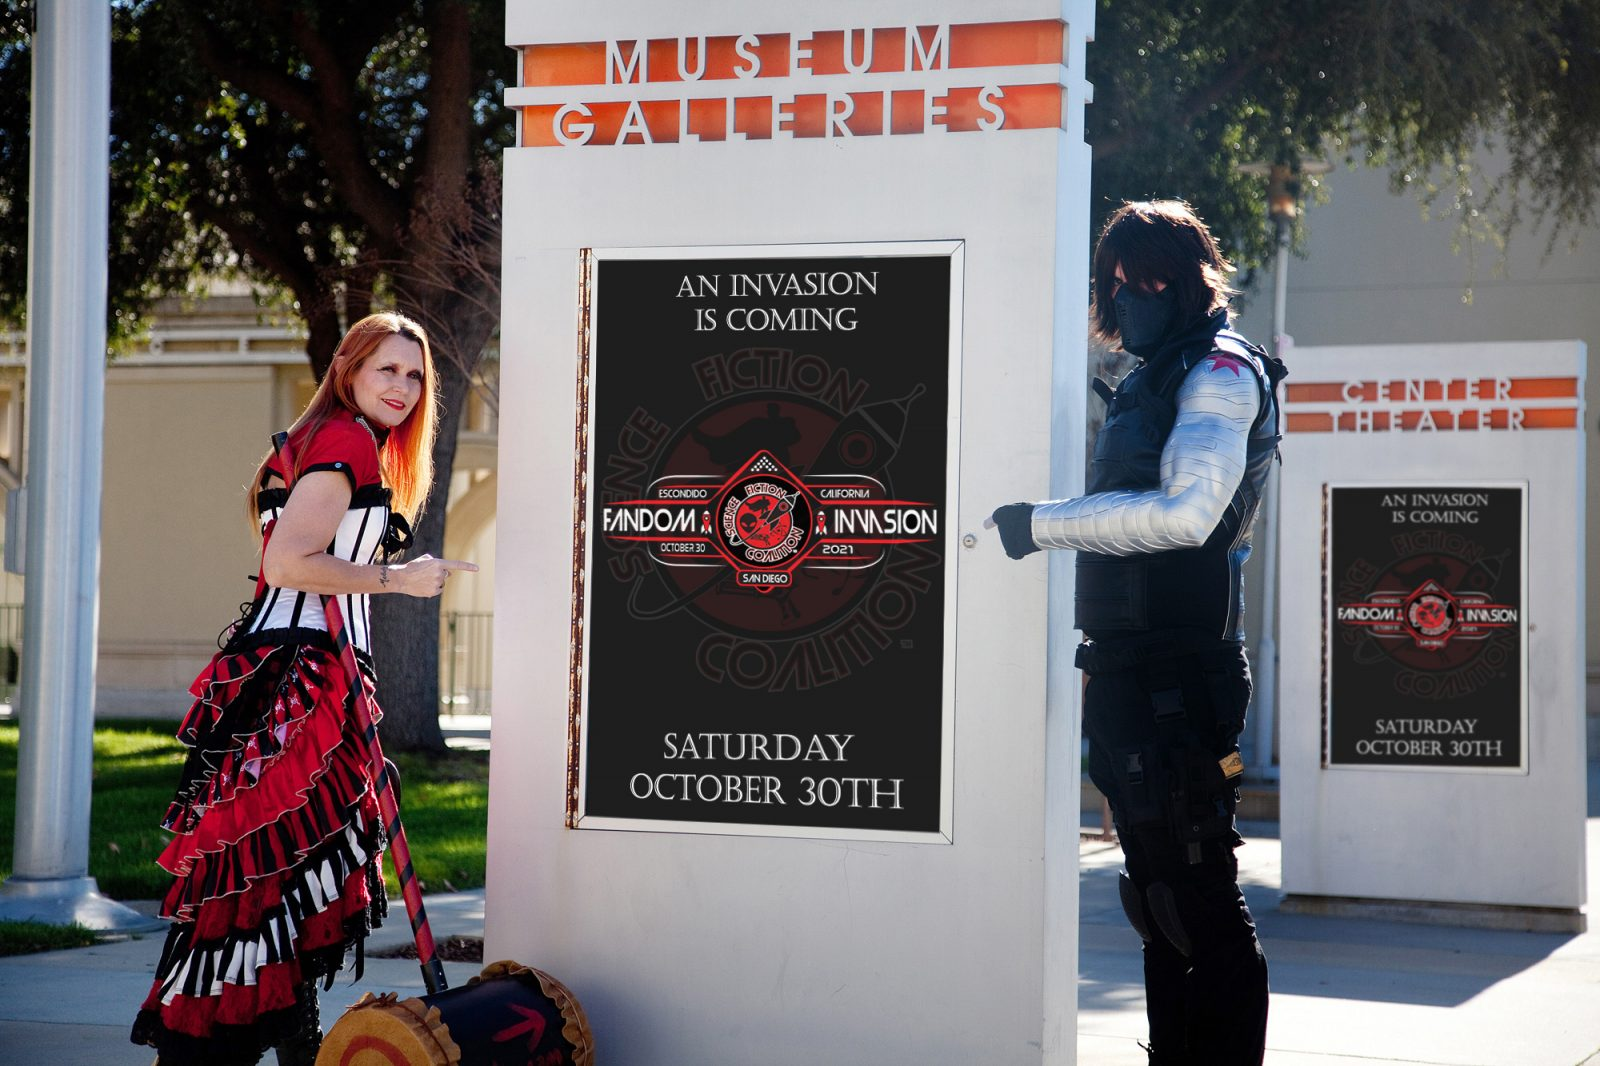 Harley Quinn and Winter Soldier cosplayers point at a Fandom Invasion poster stating that an Invasion is coming.